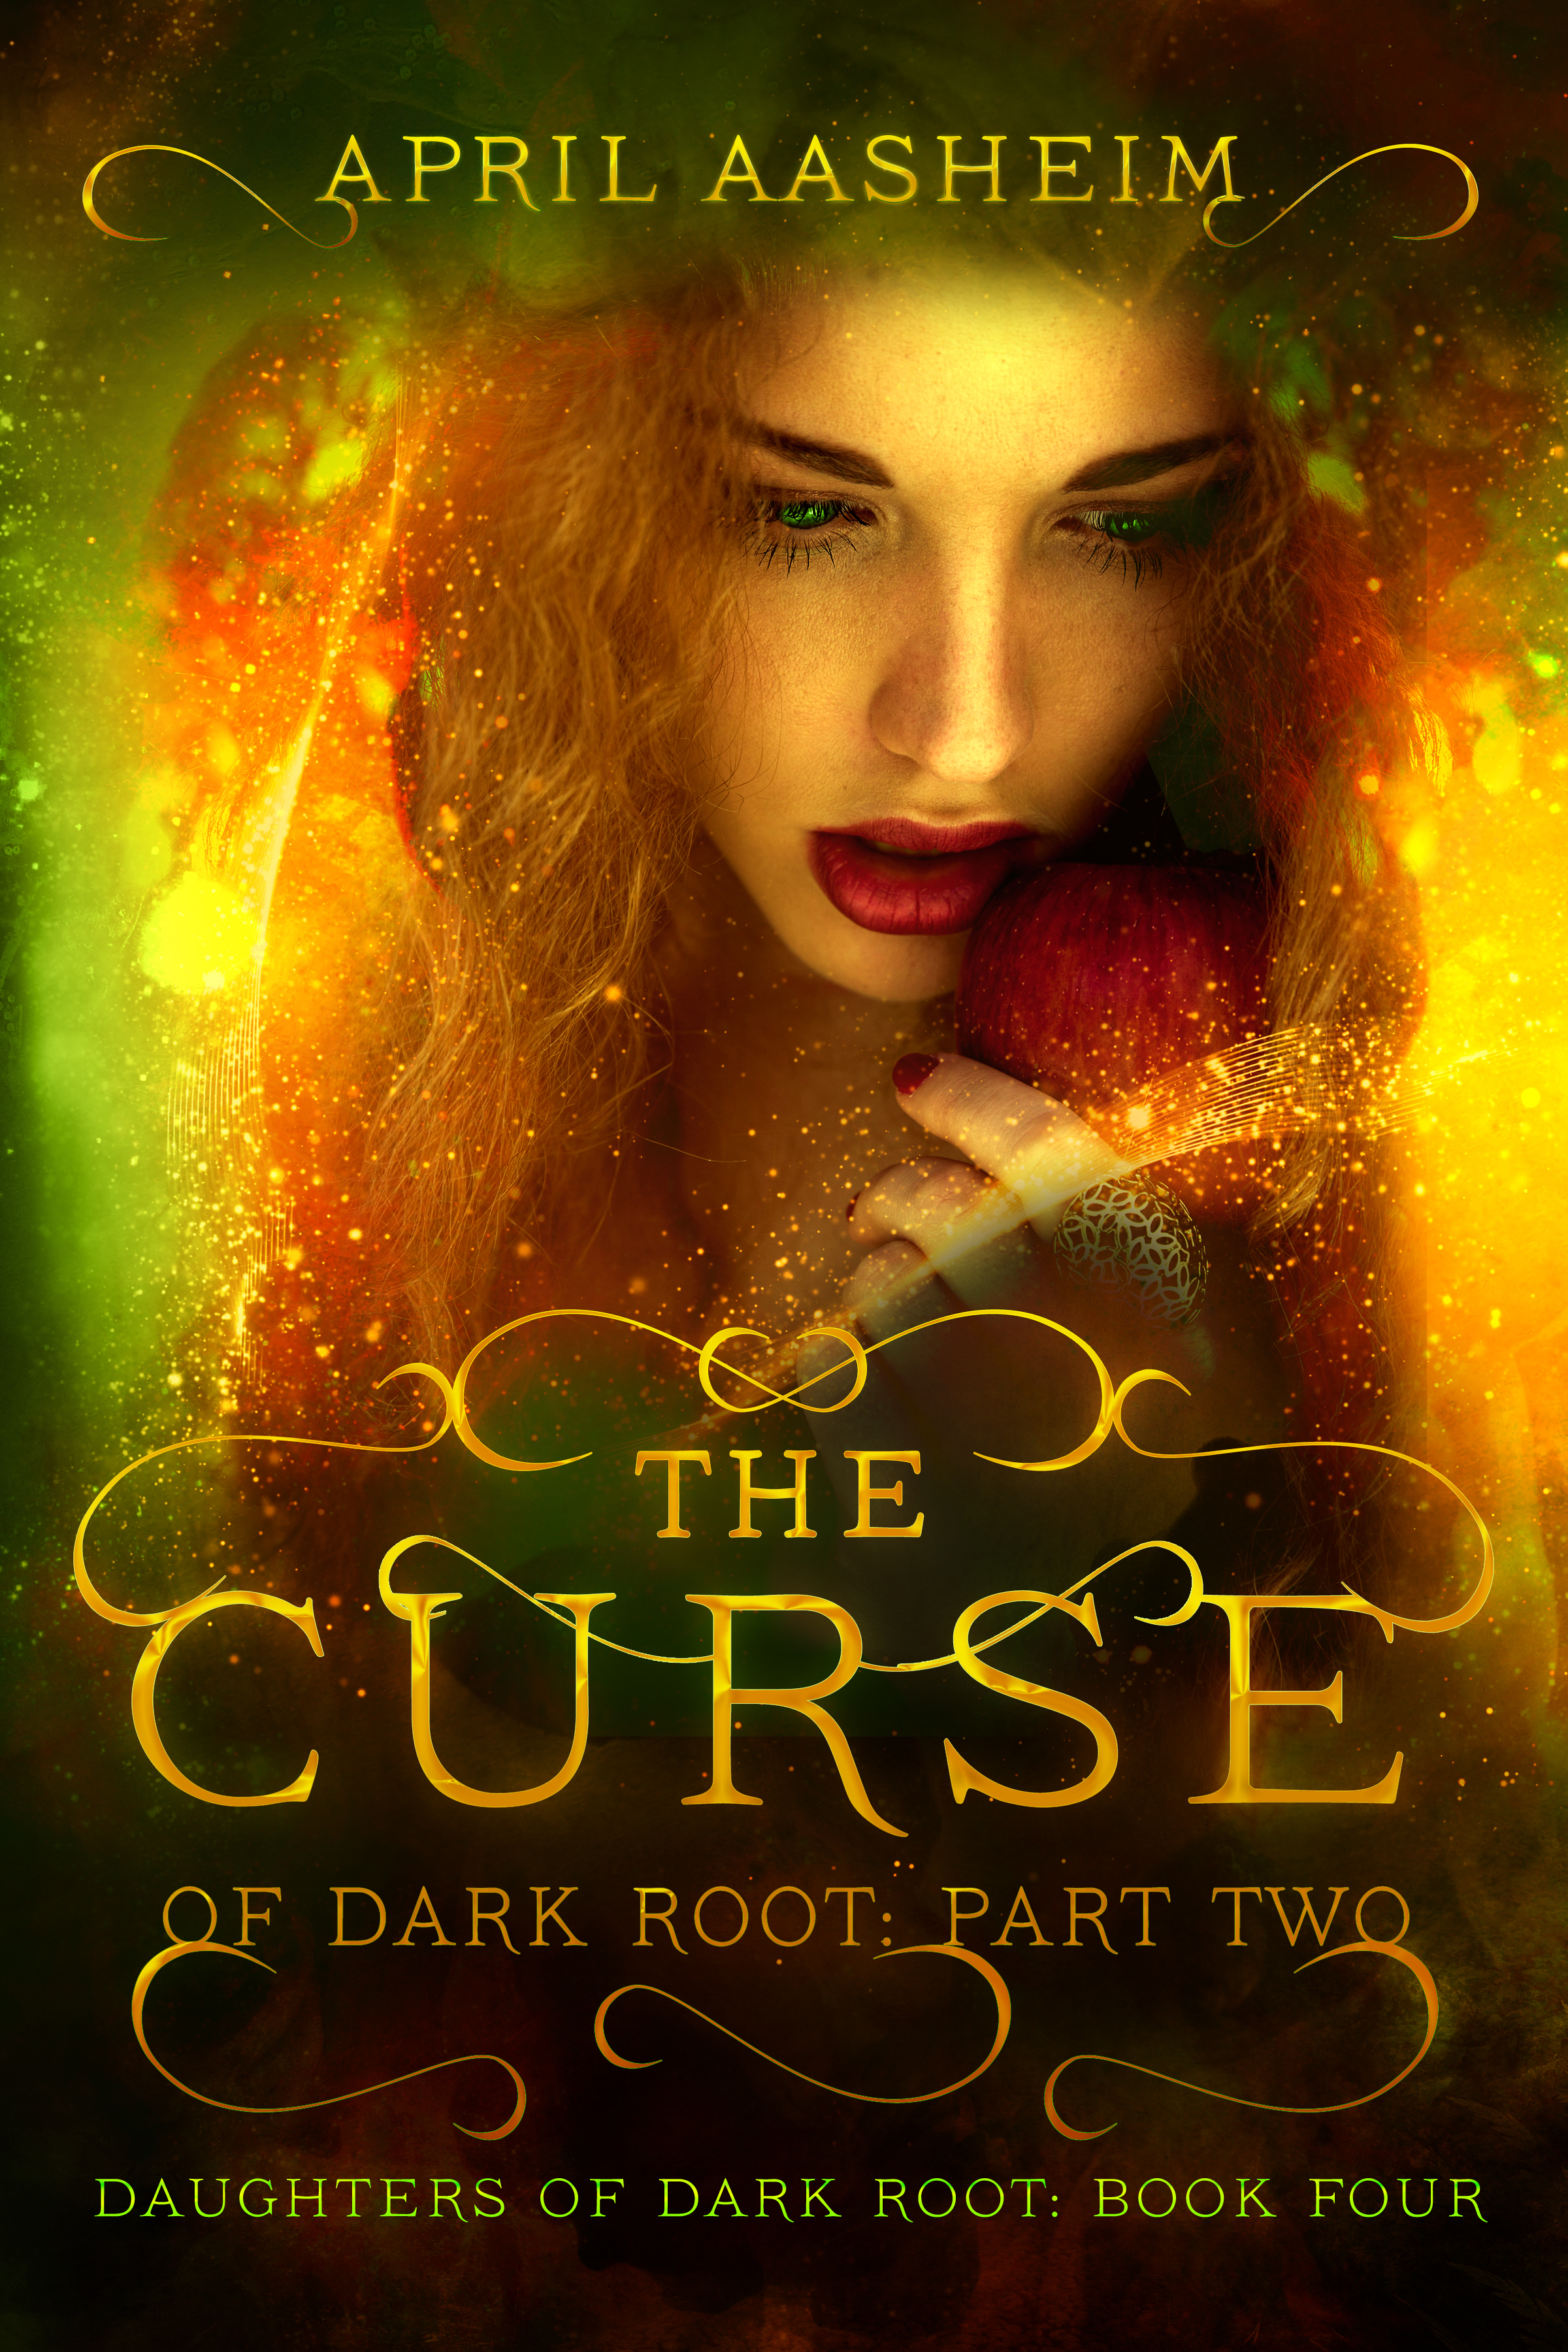 The Curse of Dark Root: Part Two